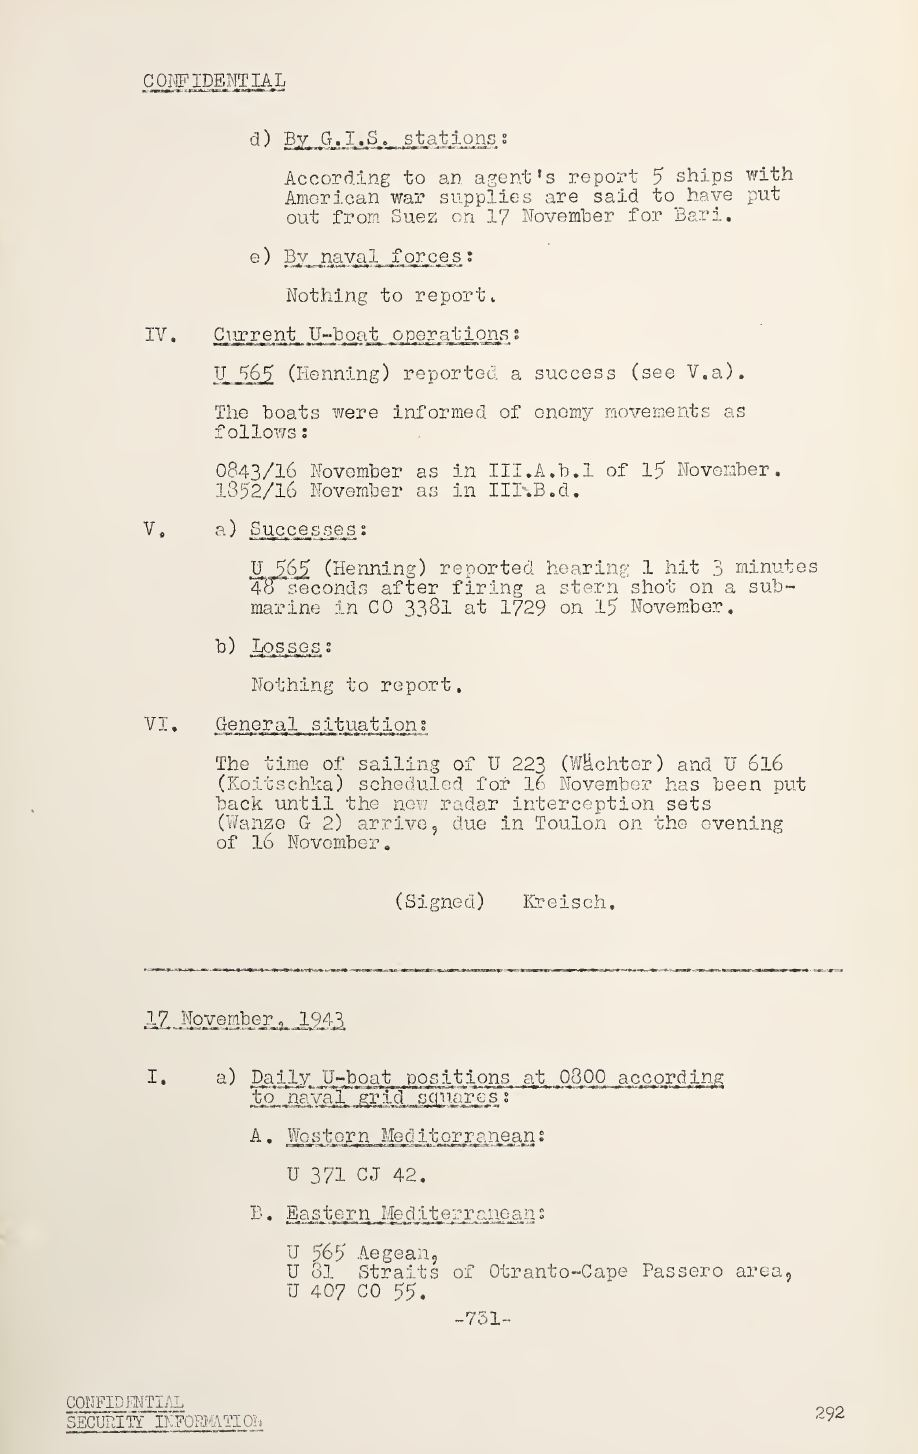 War Diary of Captain U-Boats Sample Entry 8